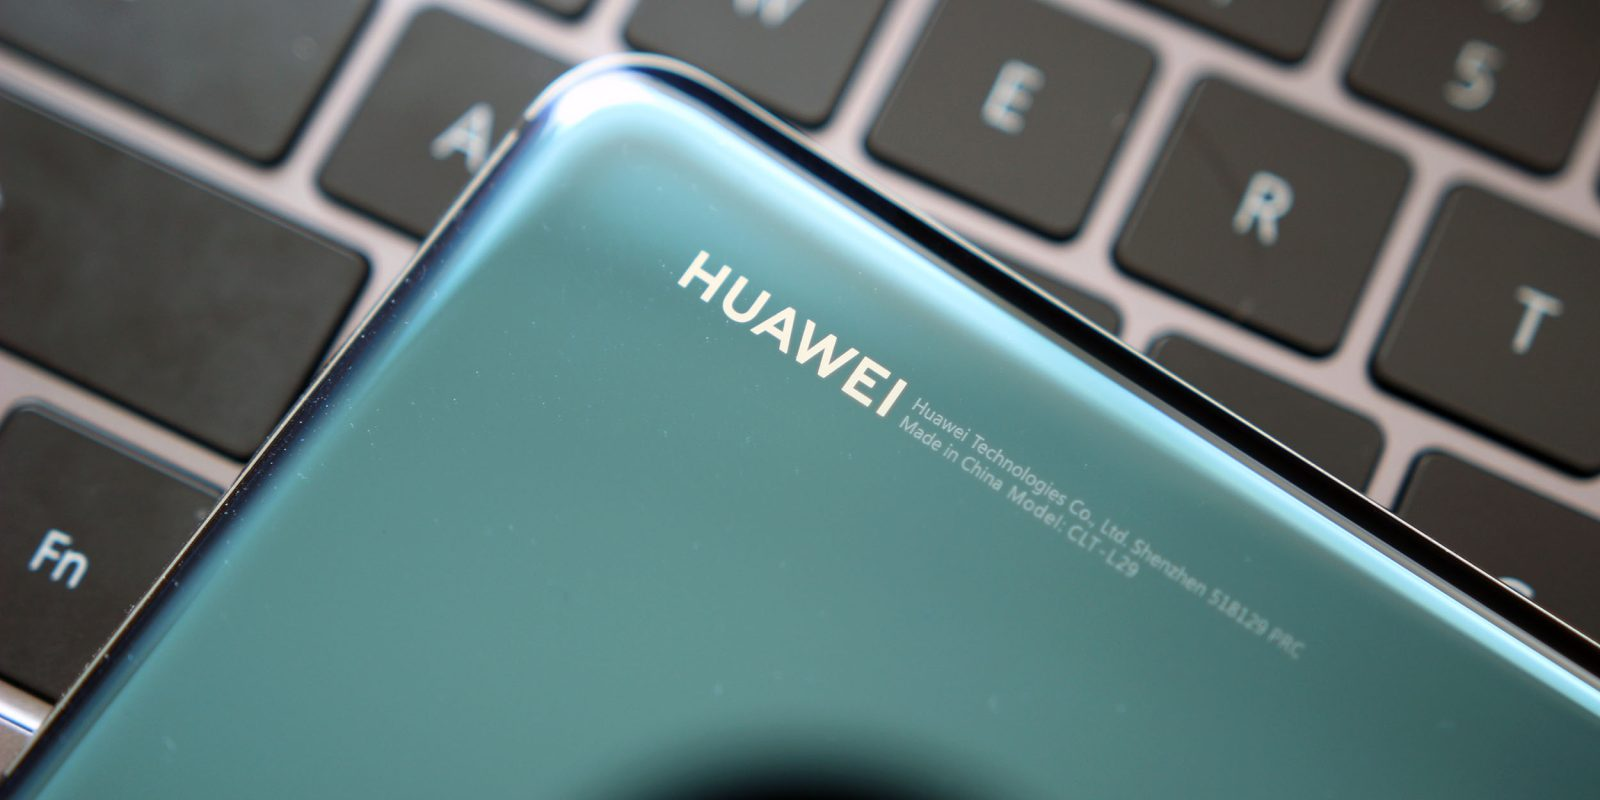 Huawei will no longer offer bootloader unlock codes for its Android